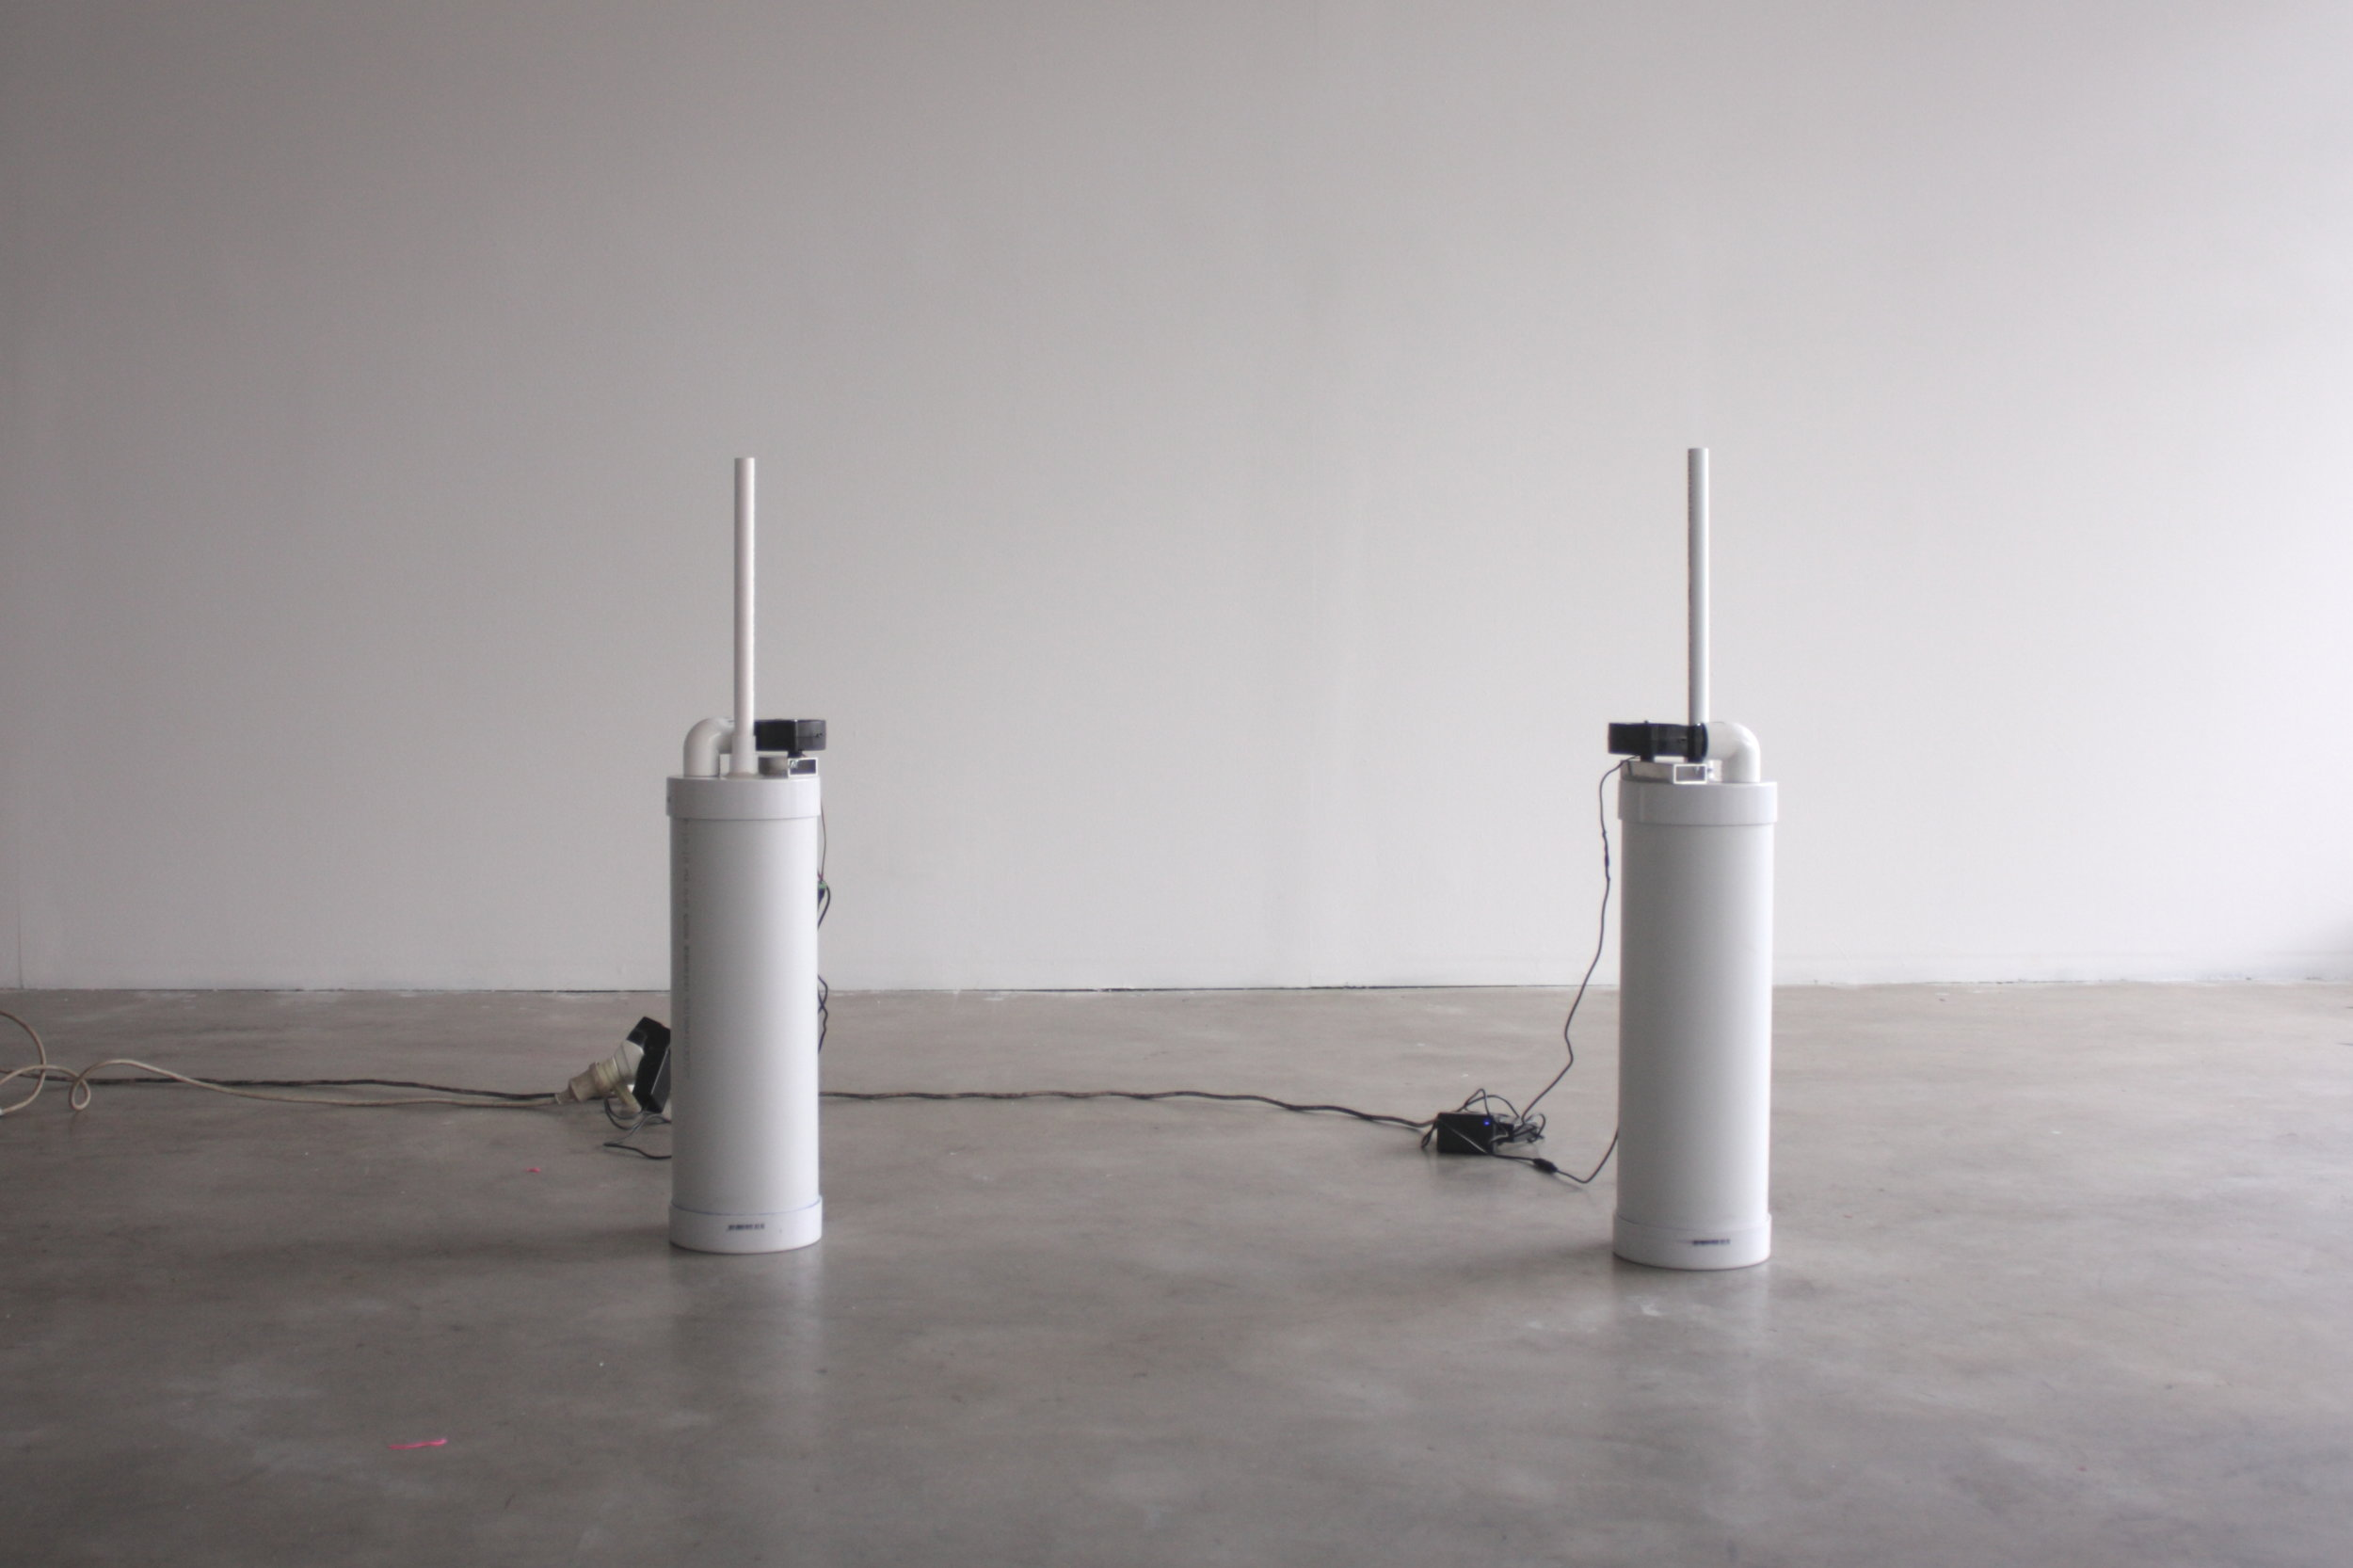 Fountain , 2019, PVC pipe, electrical components, water, melatonin, botanical oils, mist, dimensions variable